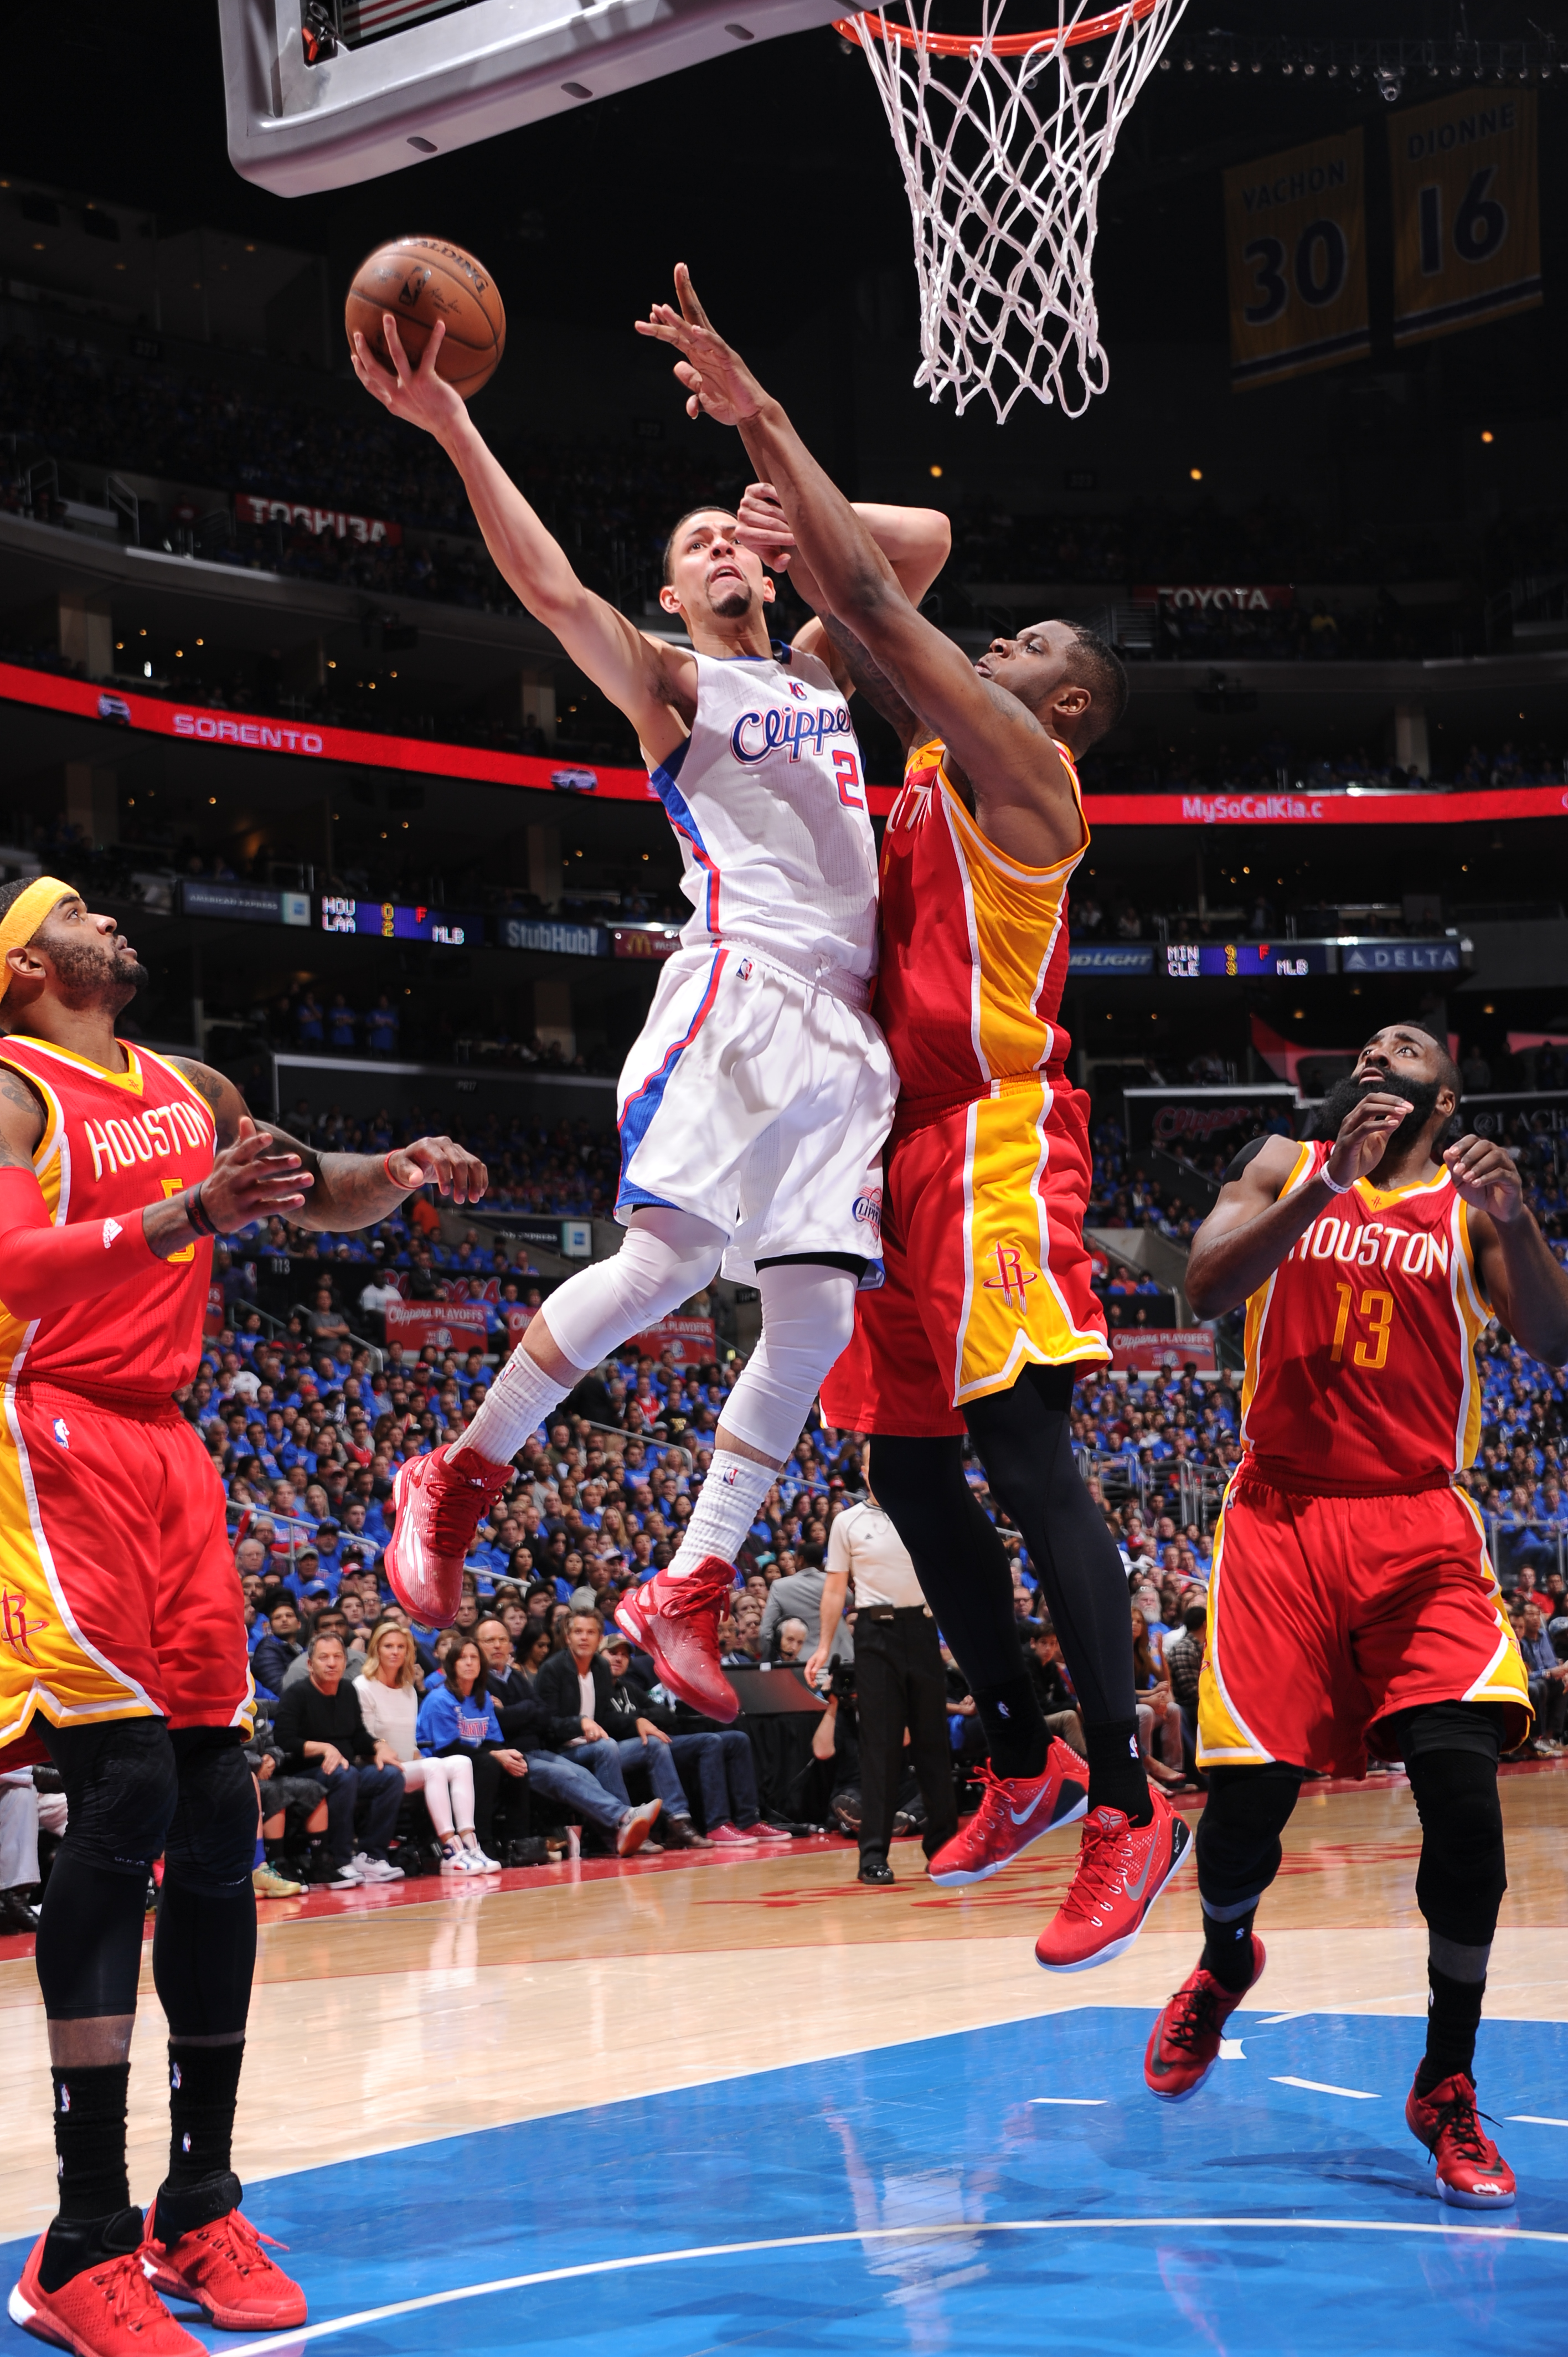 LOS ANGELES, CA - MAY 8:  Austin Rivers #25 of the Los Angeles Clippers shoots the ball against the Houston Rockets in Game Three of the Western Conference Semifinals during the 2015 NBA Playoffs on May 8, 2015 at STAPLES Center in Los Angeles, California